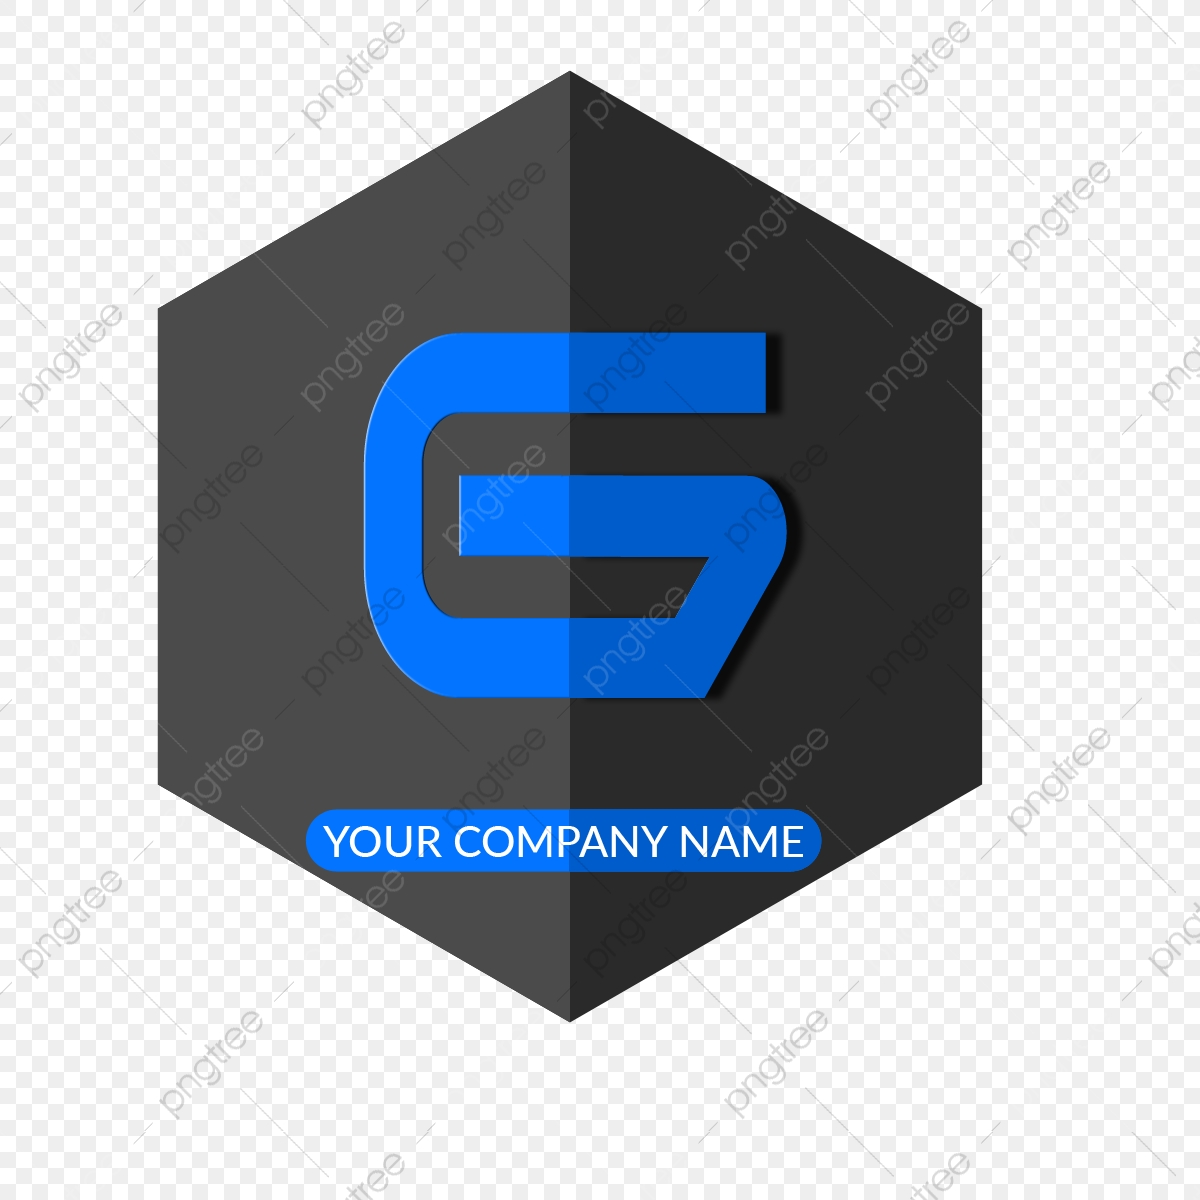 letter g logo design logo icons letter icons a png transparent clipart image and psd file for free download https pngtree com freepng letter g logo design 4060467 html